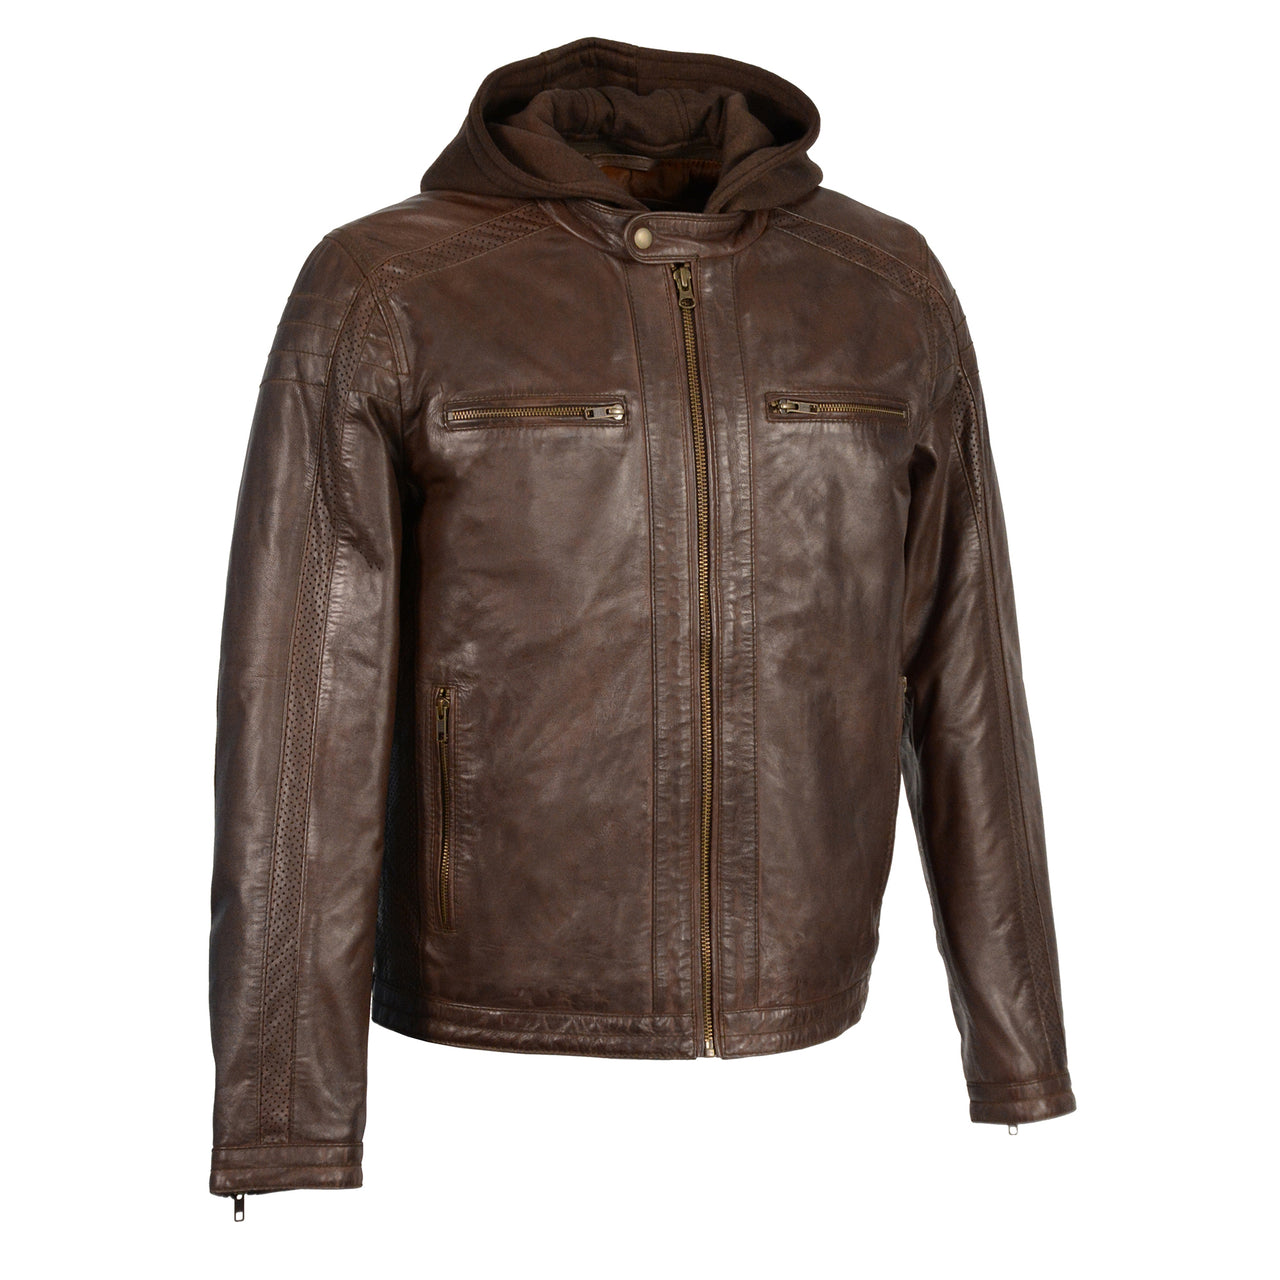 Men's Zipper Front Leather Jacket w/ Removable Hood - HighwayLeather